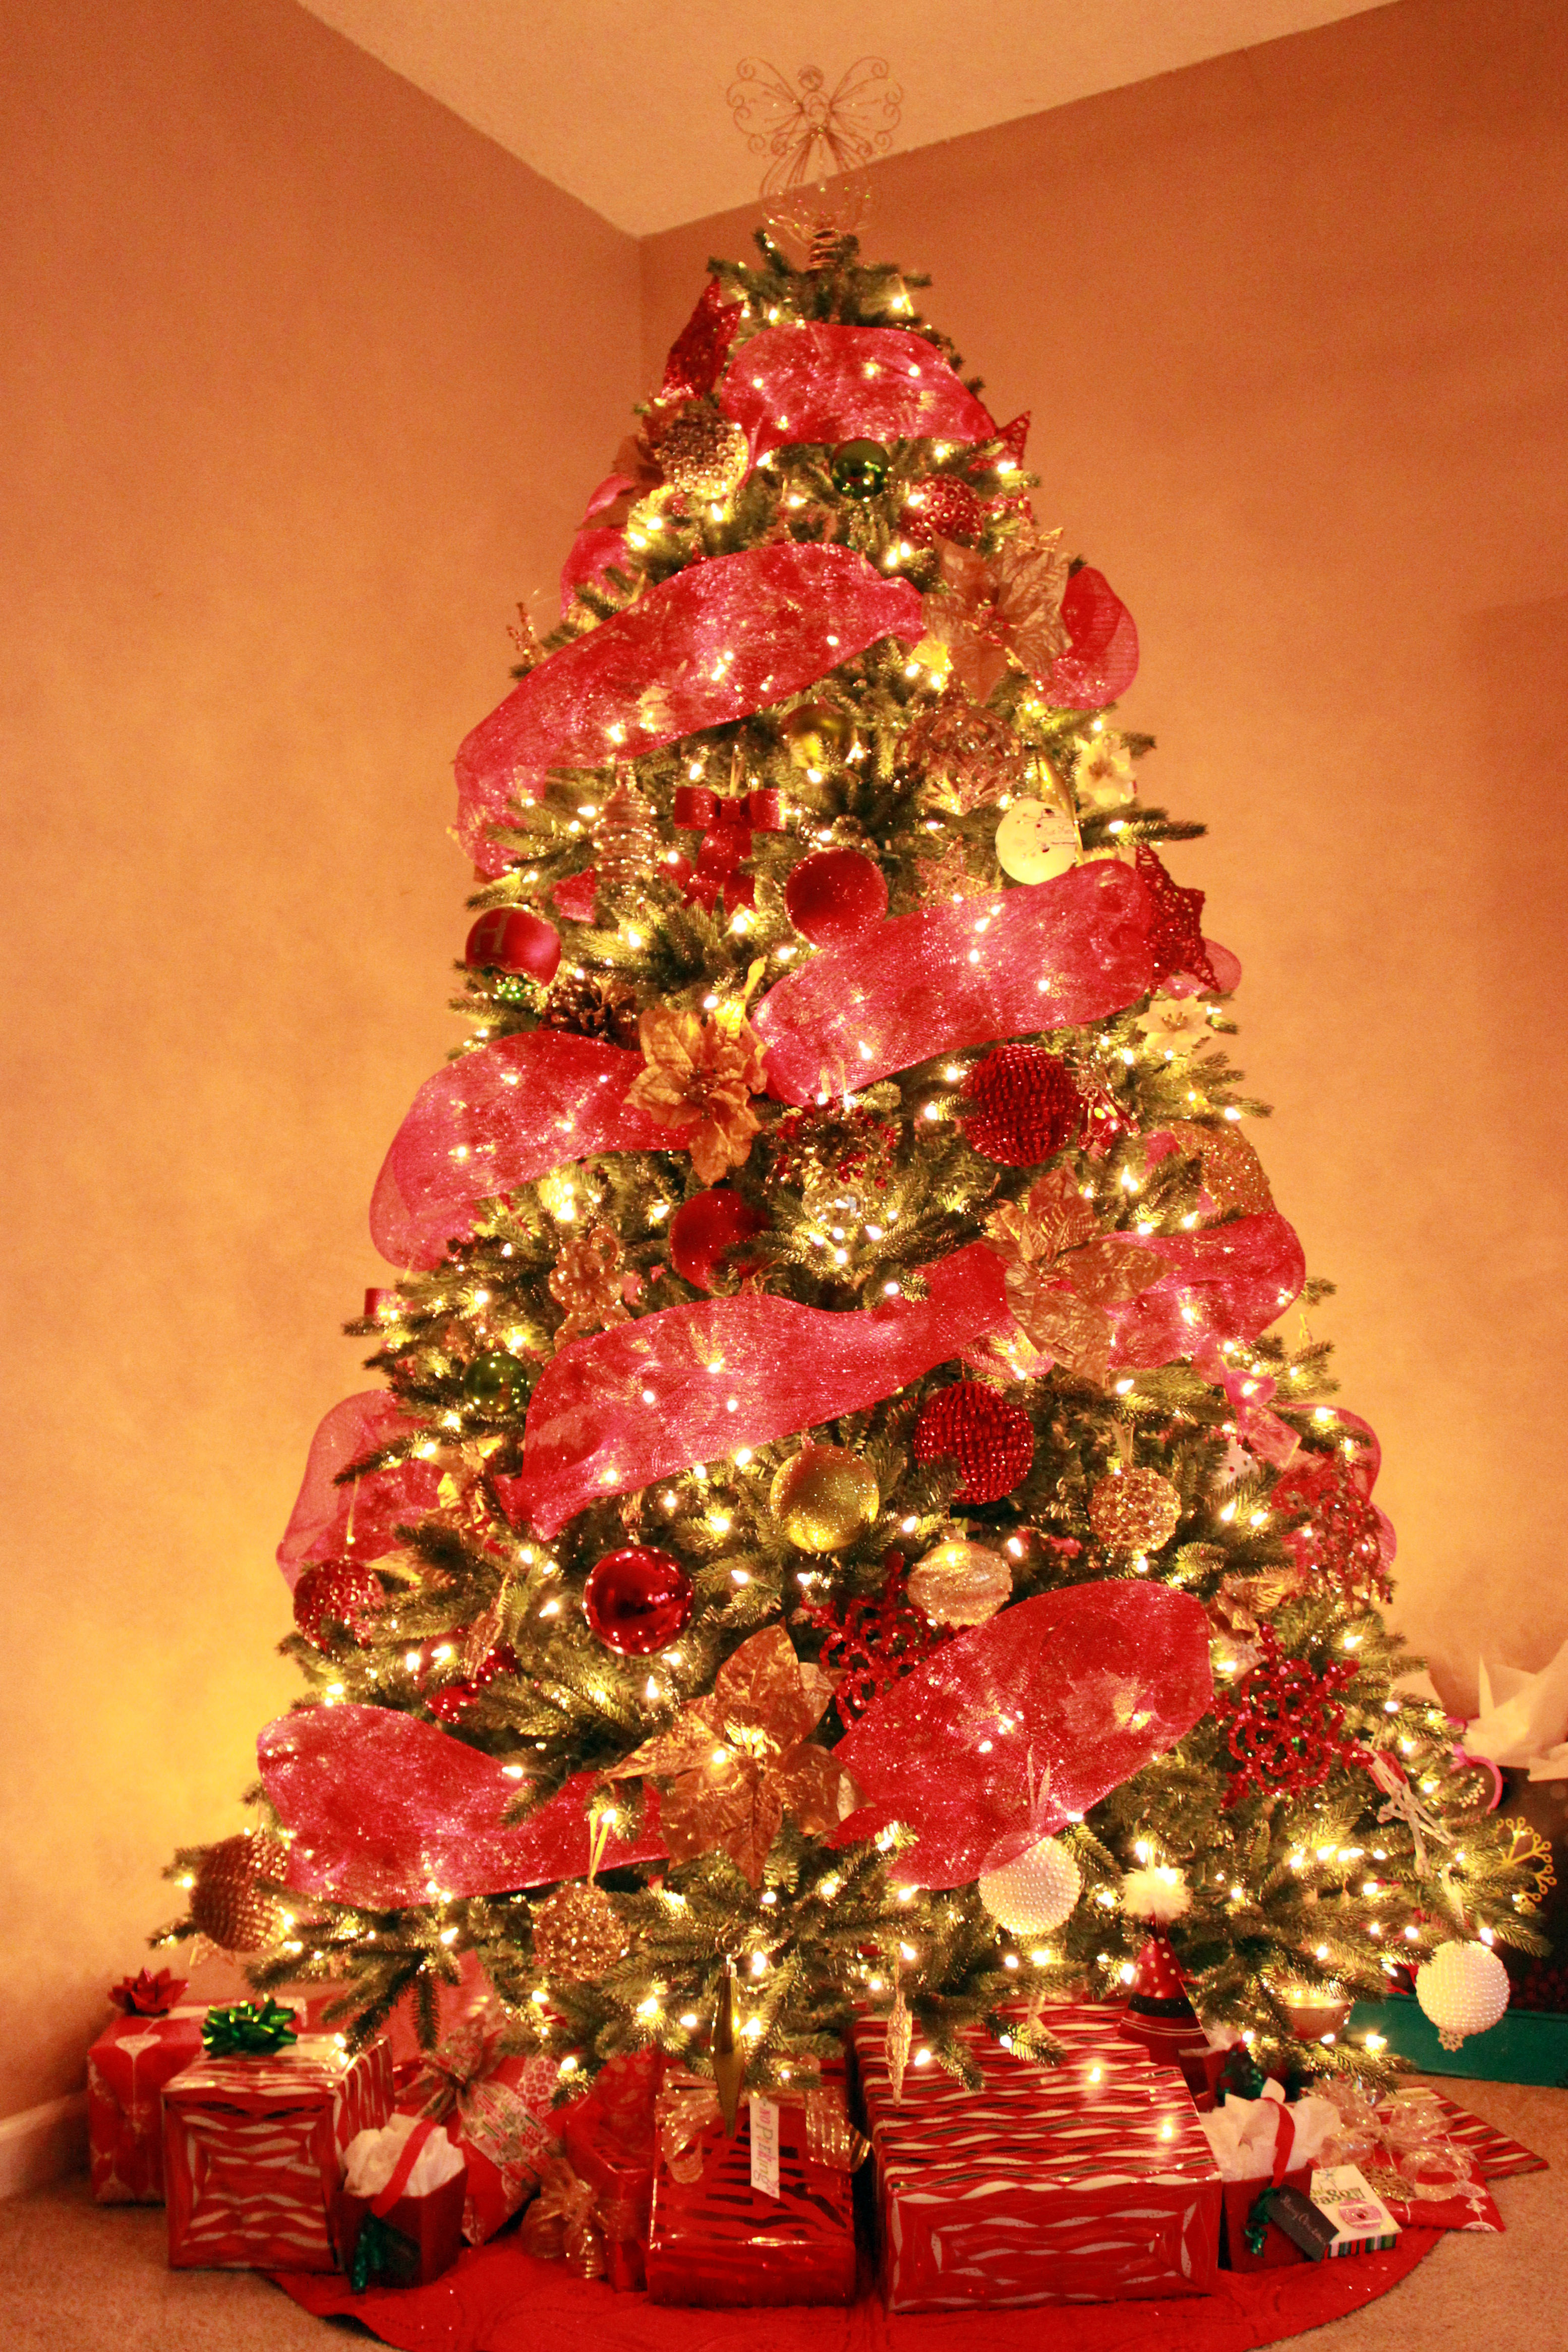 its tough to switch themescolors because you almost have to buy all new stuff the theme i would want next would require almost all new decorations tree - Christmas Tree Color Themes